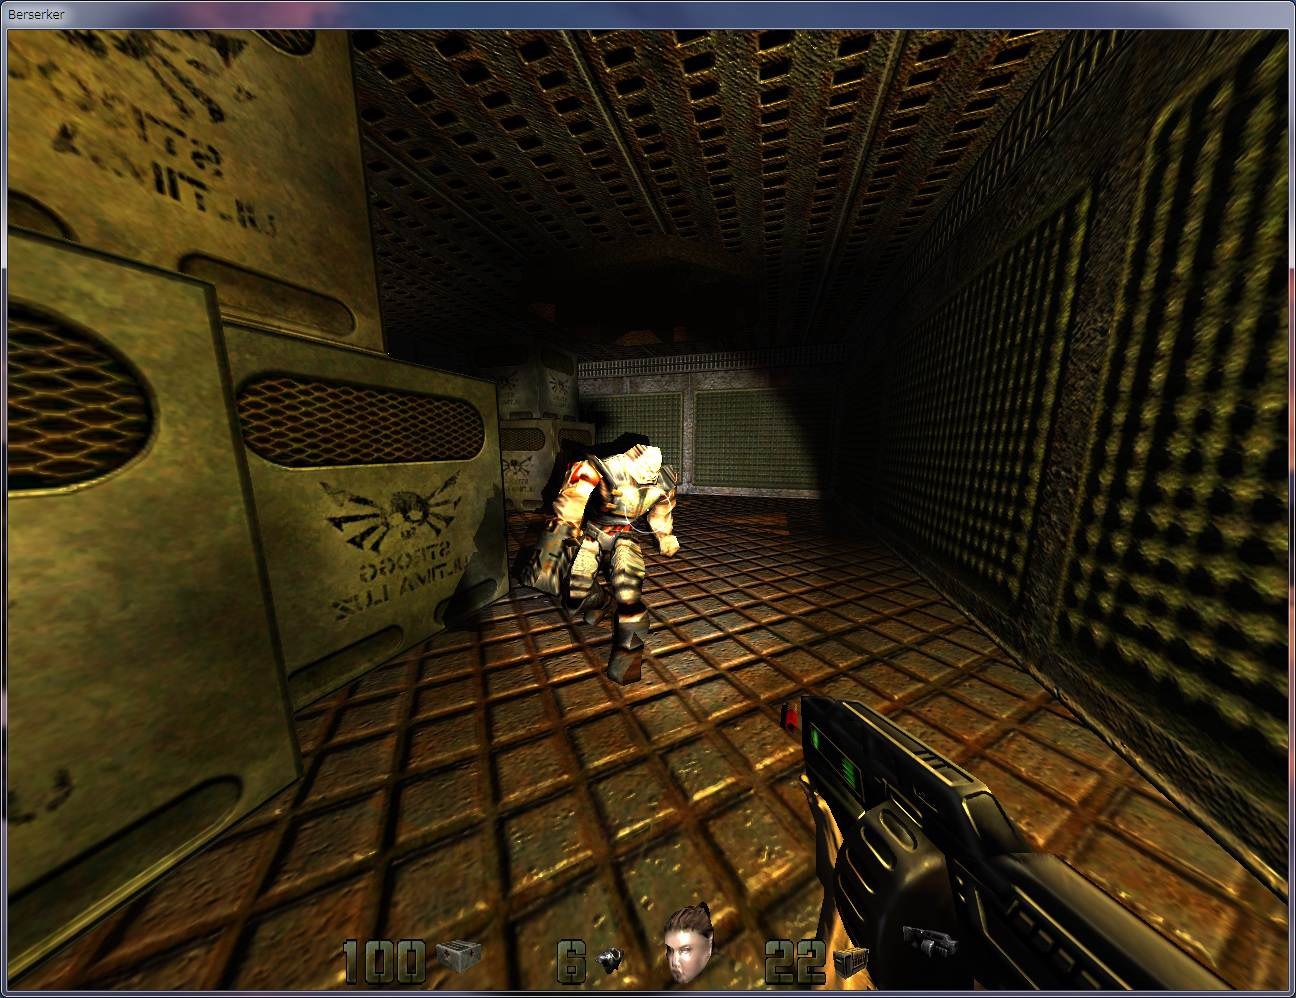 Download Game PC Ringan Quake 2 Full RIP - Download Free Games